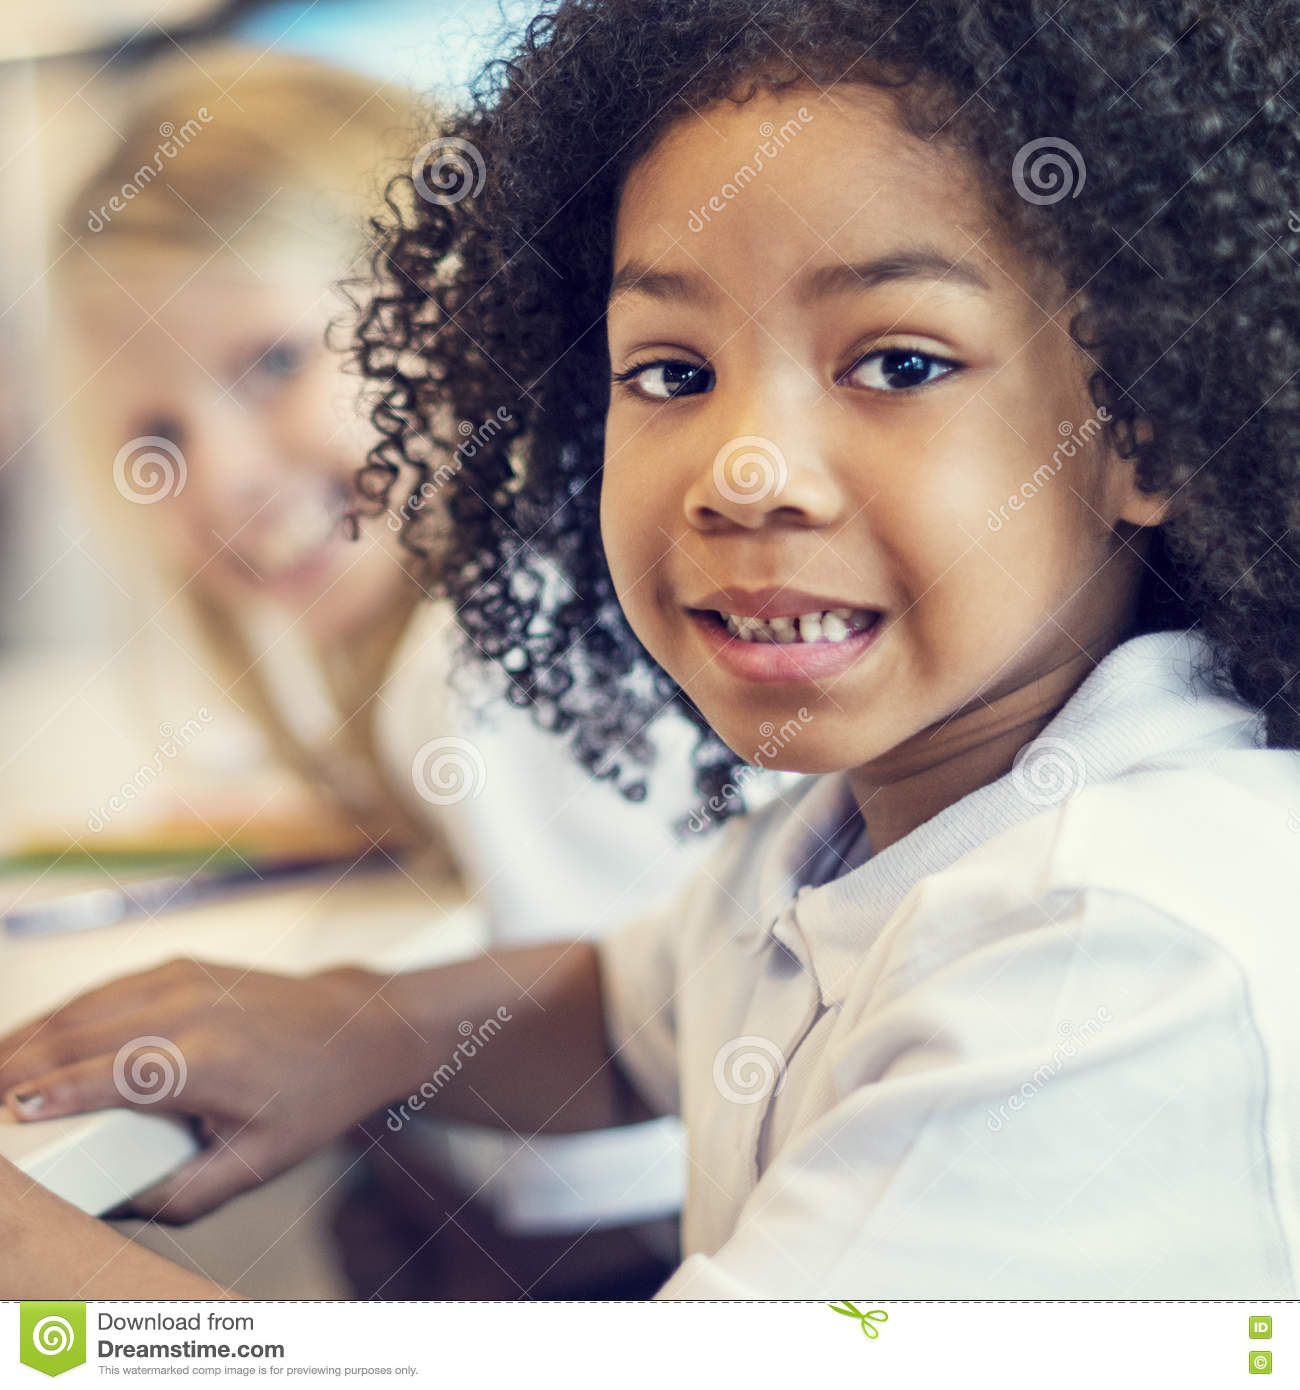 internet in the classroom Creating presentations, learning to differentiate reliable from unreliable sources on the internet and maintaining proper online etiquette are all vital skills that students can learn in the classroom.